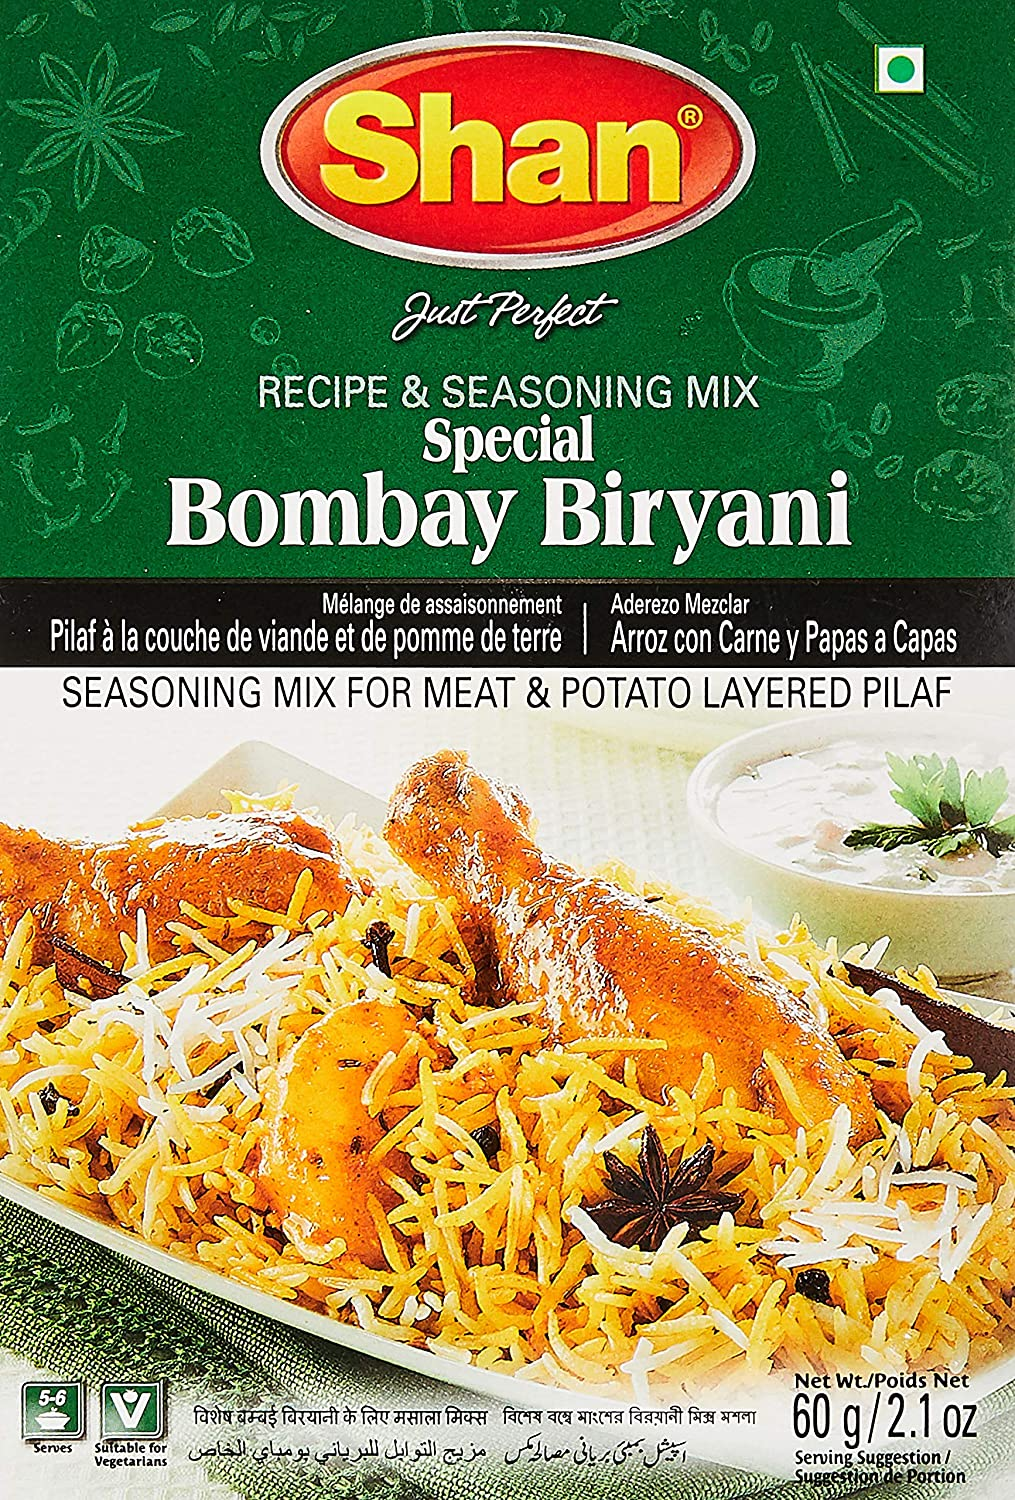 Amazon.com : Shan Masala Bombay Biryani Mix, 2.1 oz. : Indian Food ...